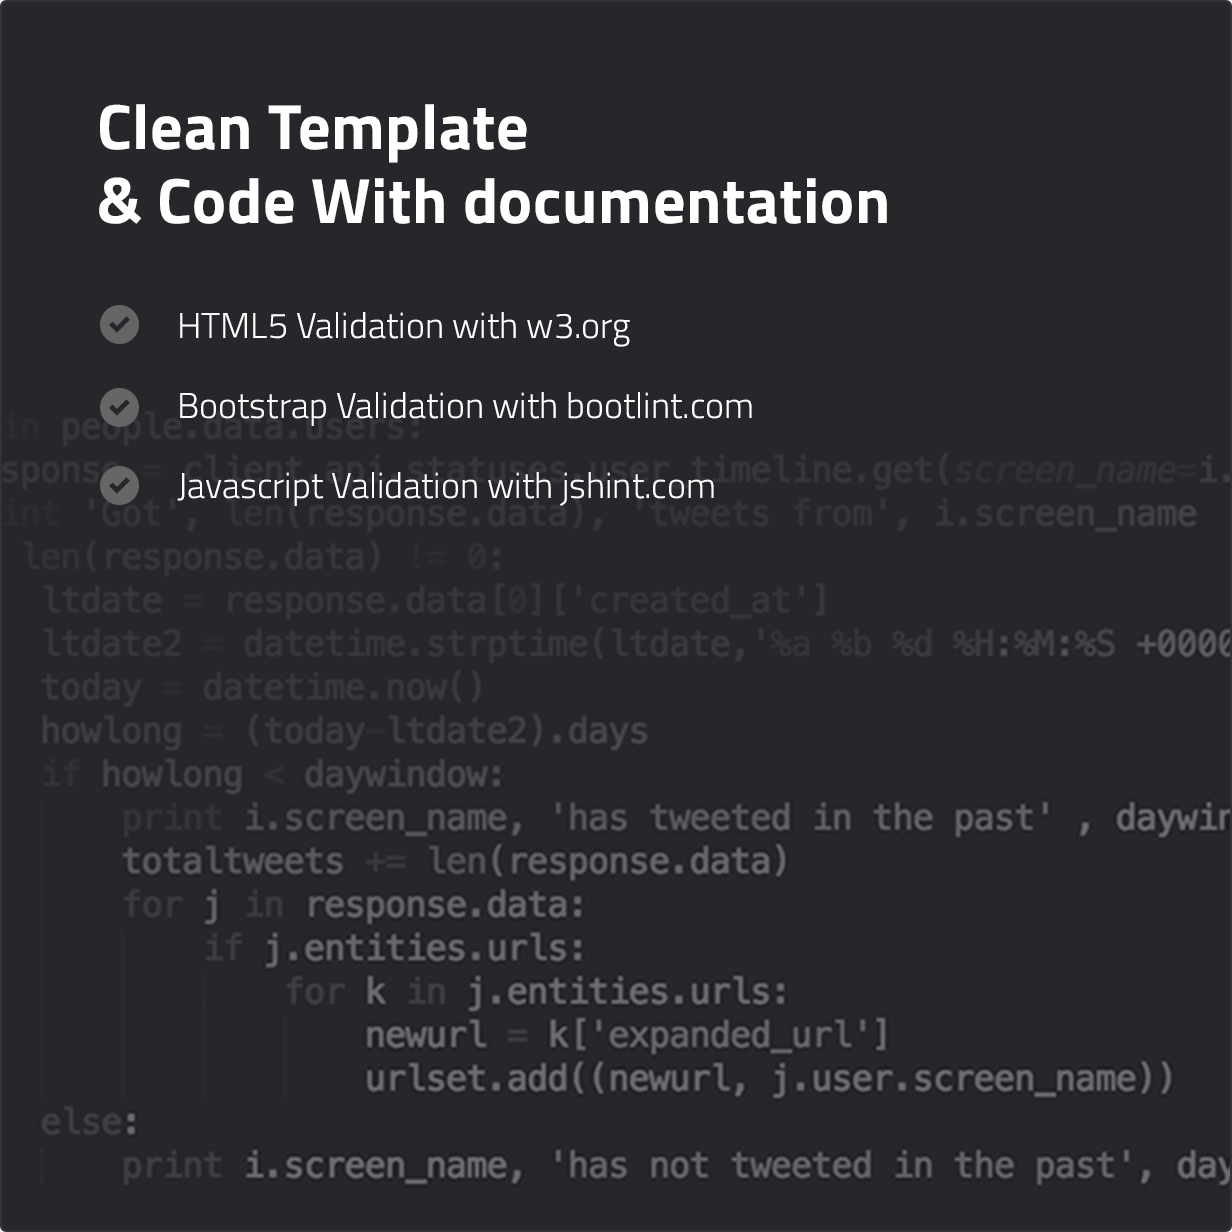 Clean Template & Code With documentation